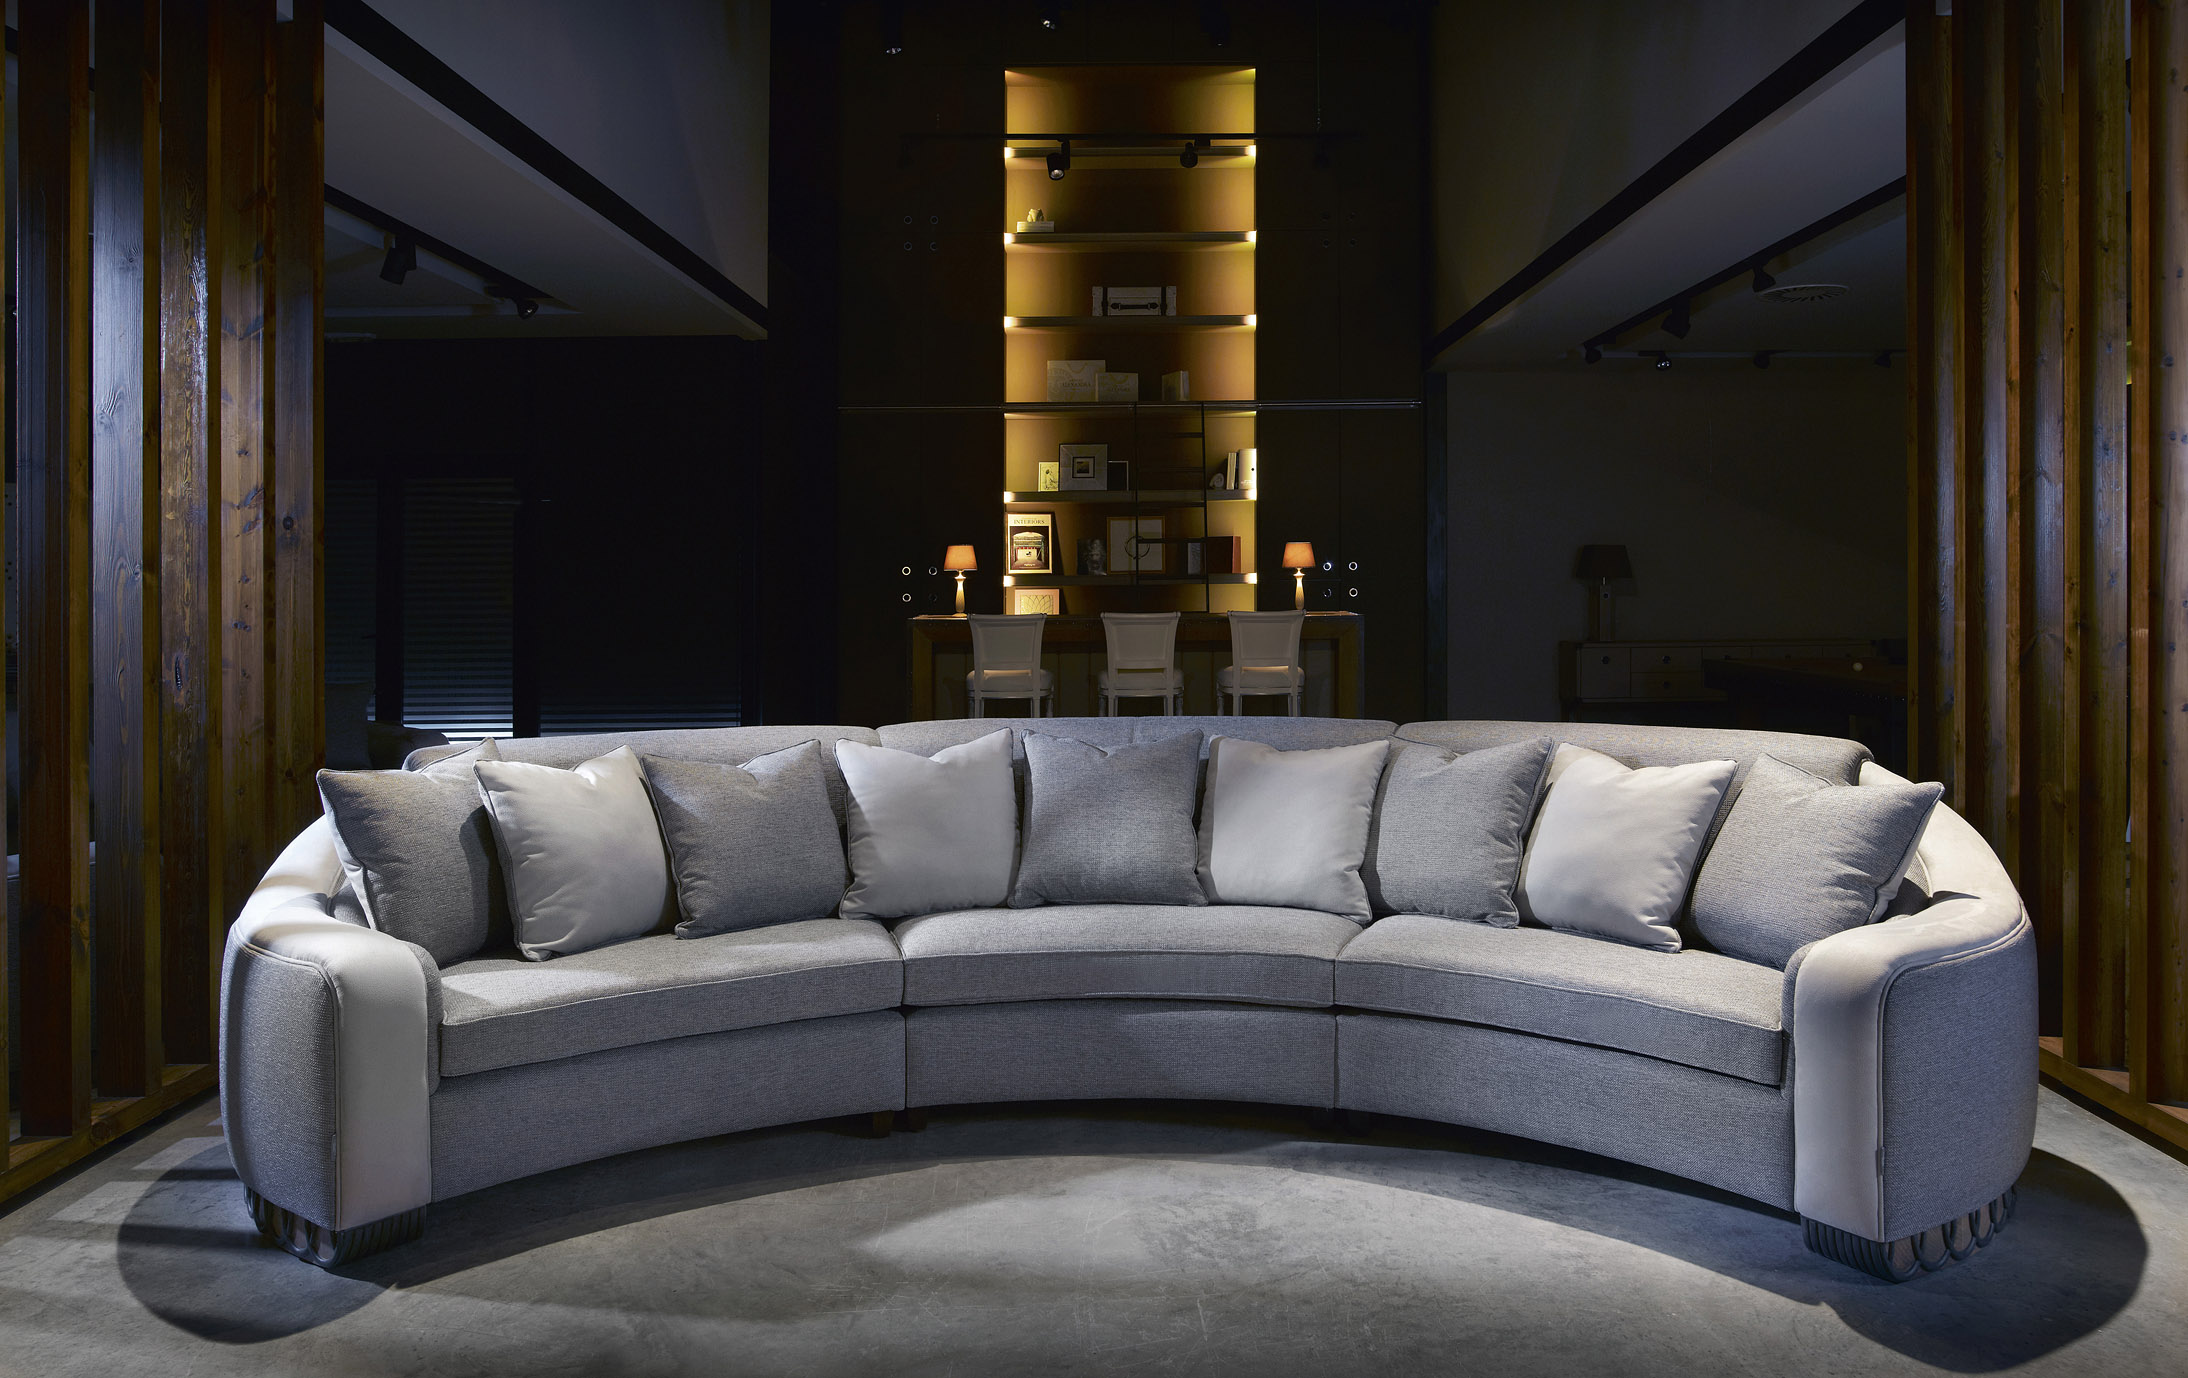 High Quality Curved Sofa, Contemporary Curved Sofa, Modern Curved Sofa, Luxury Curved  Sofa, Grey